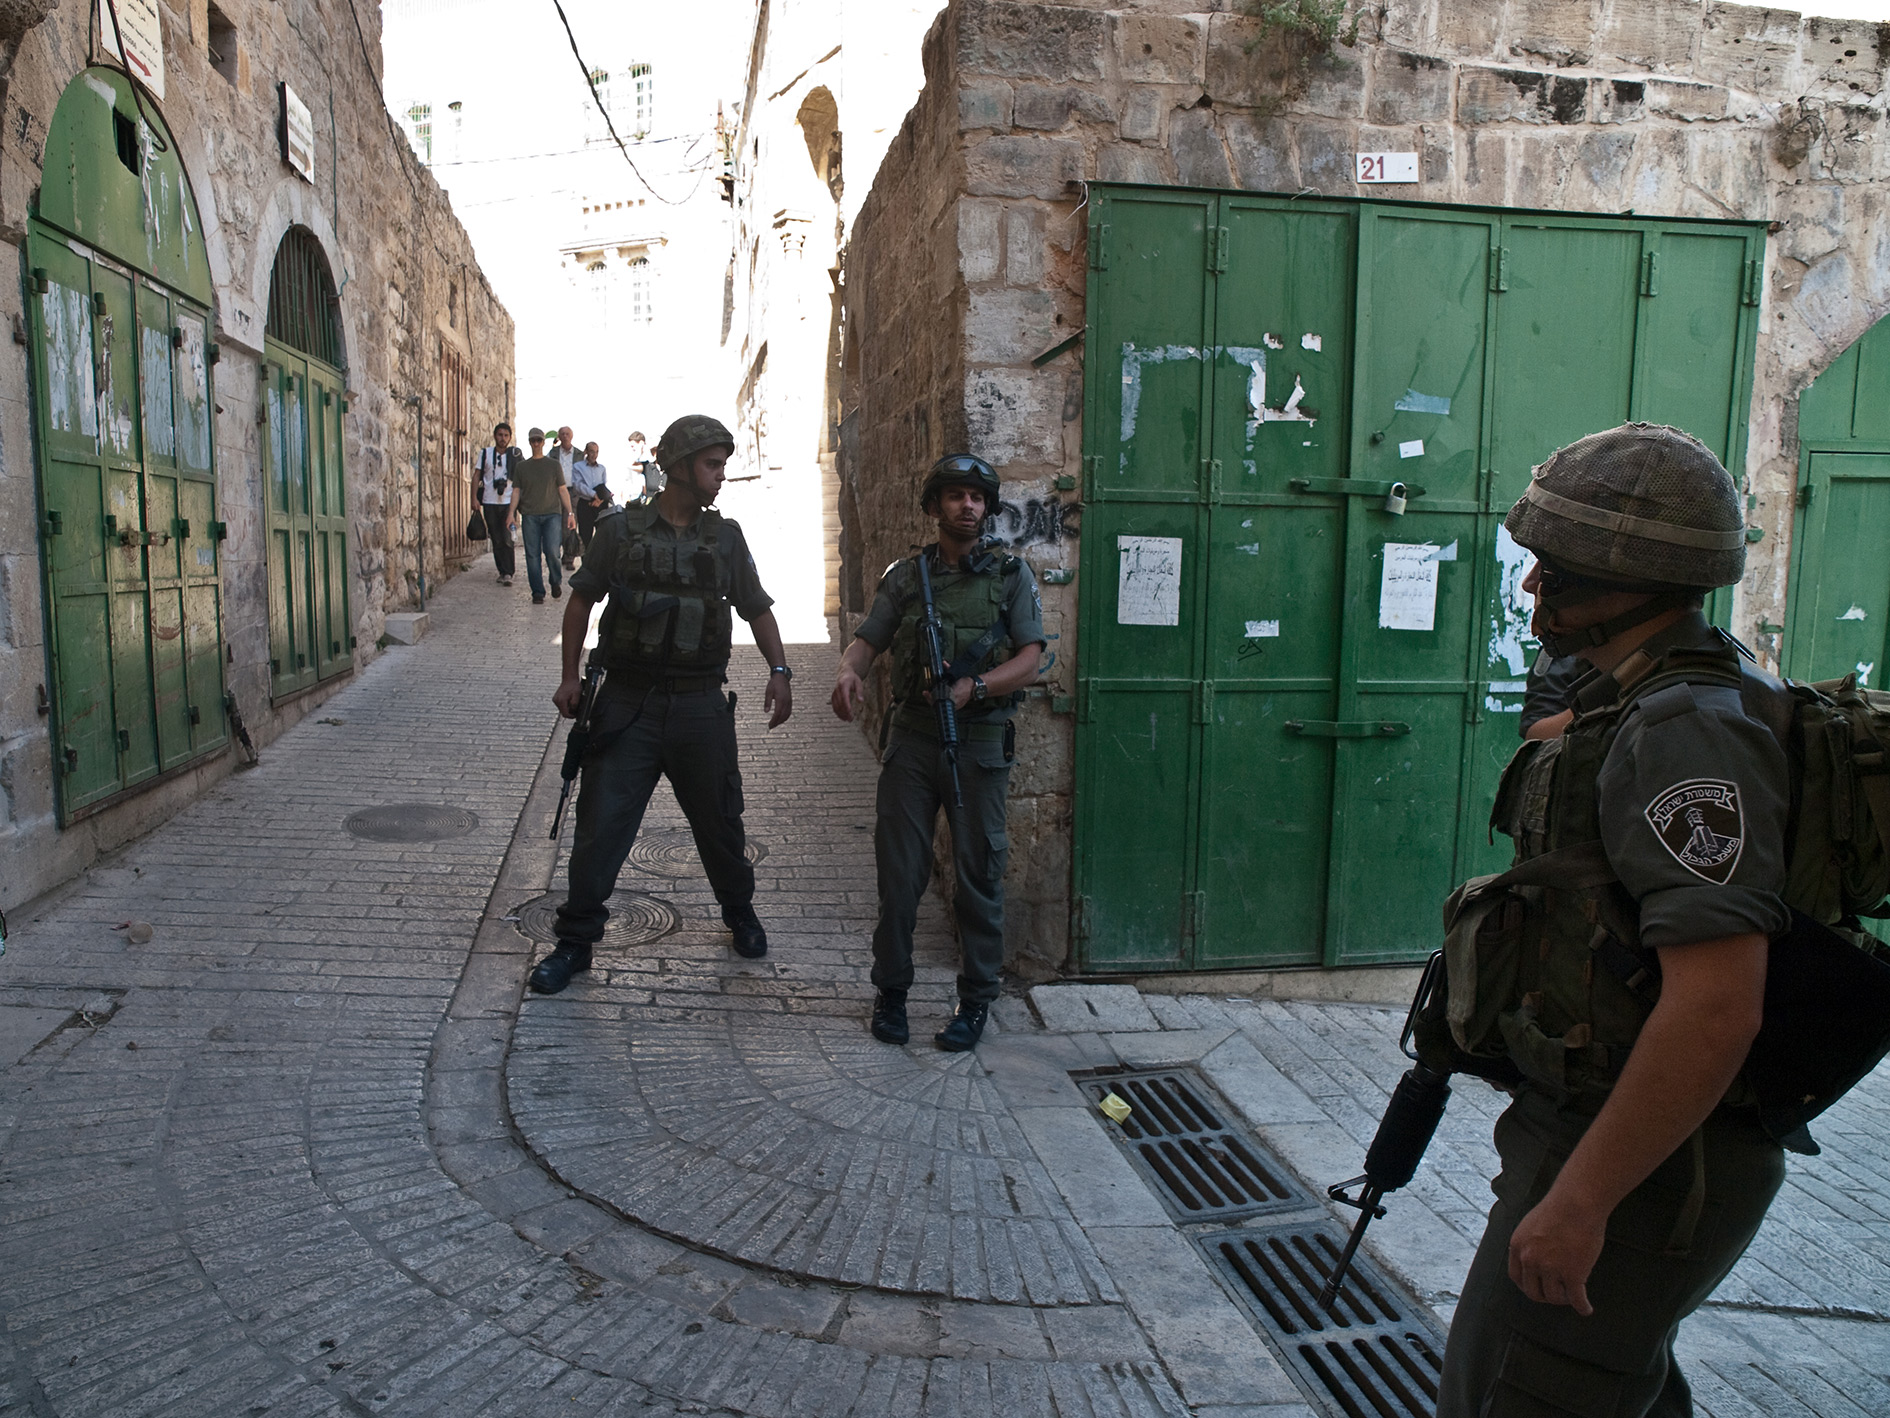 Soldiers in al-Khalil.